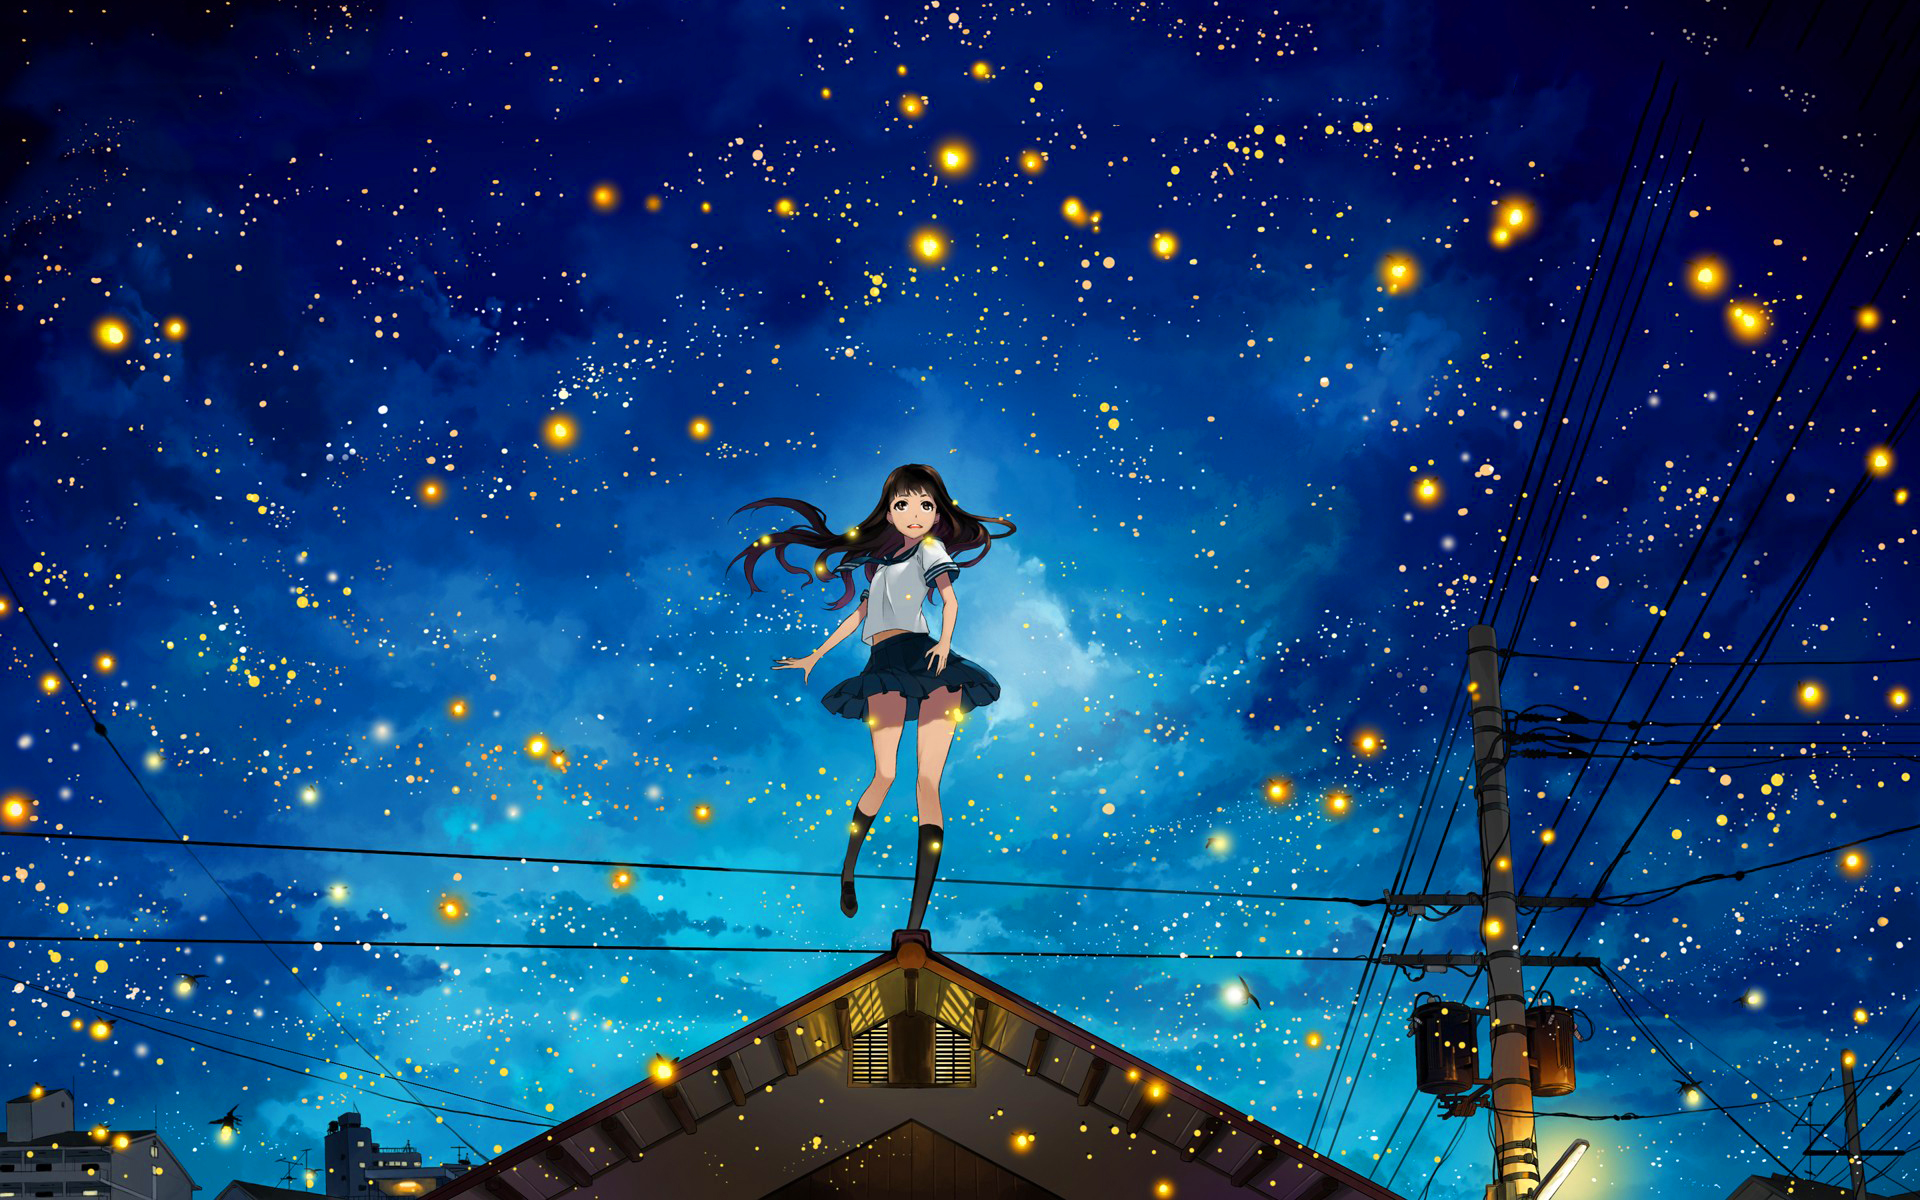 Anime girl fireflies